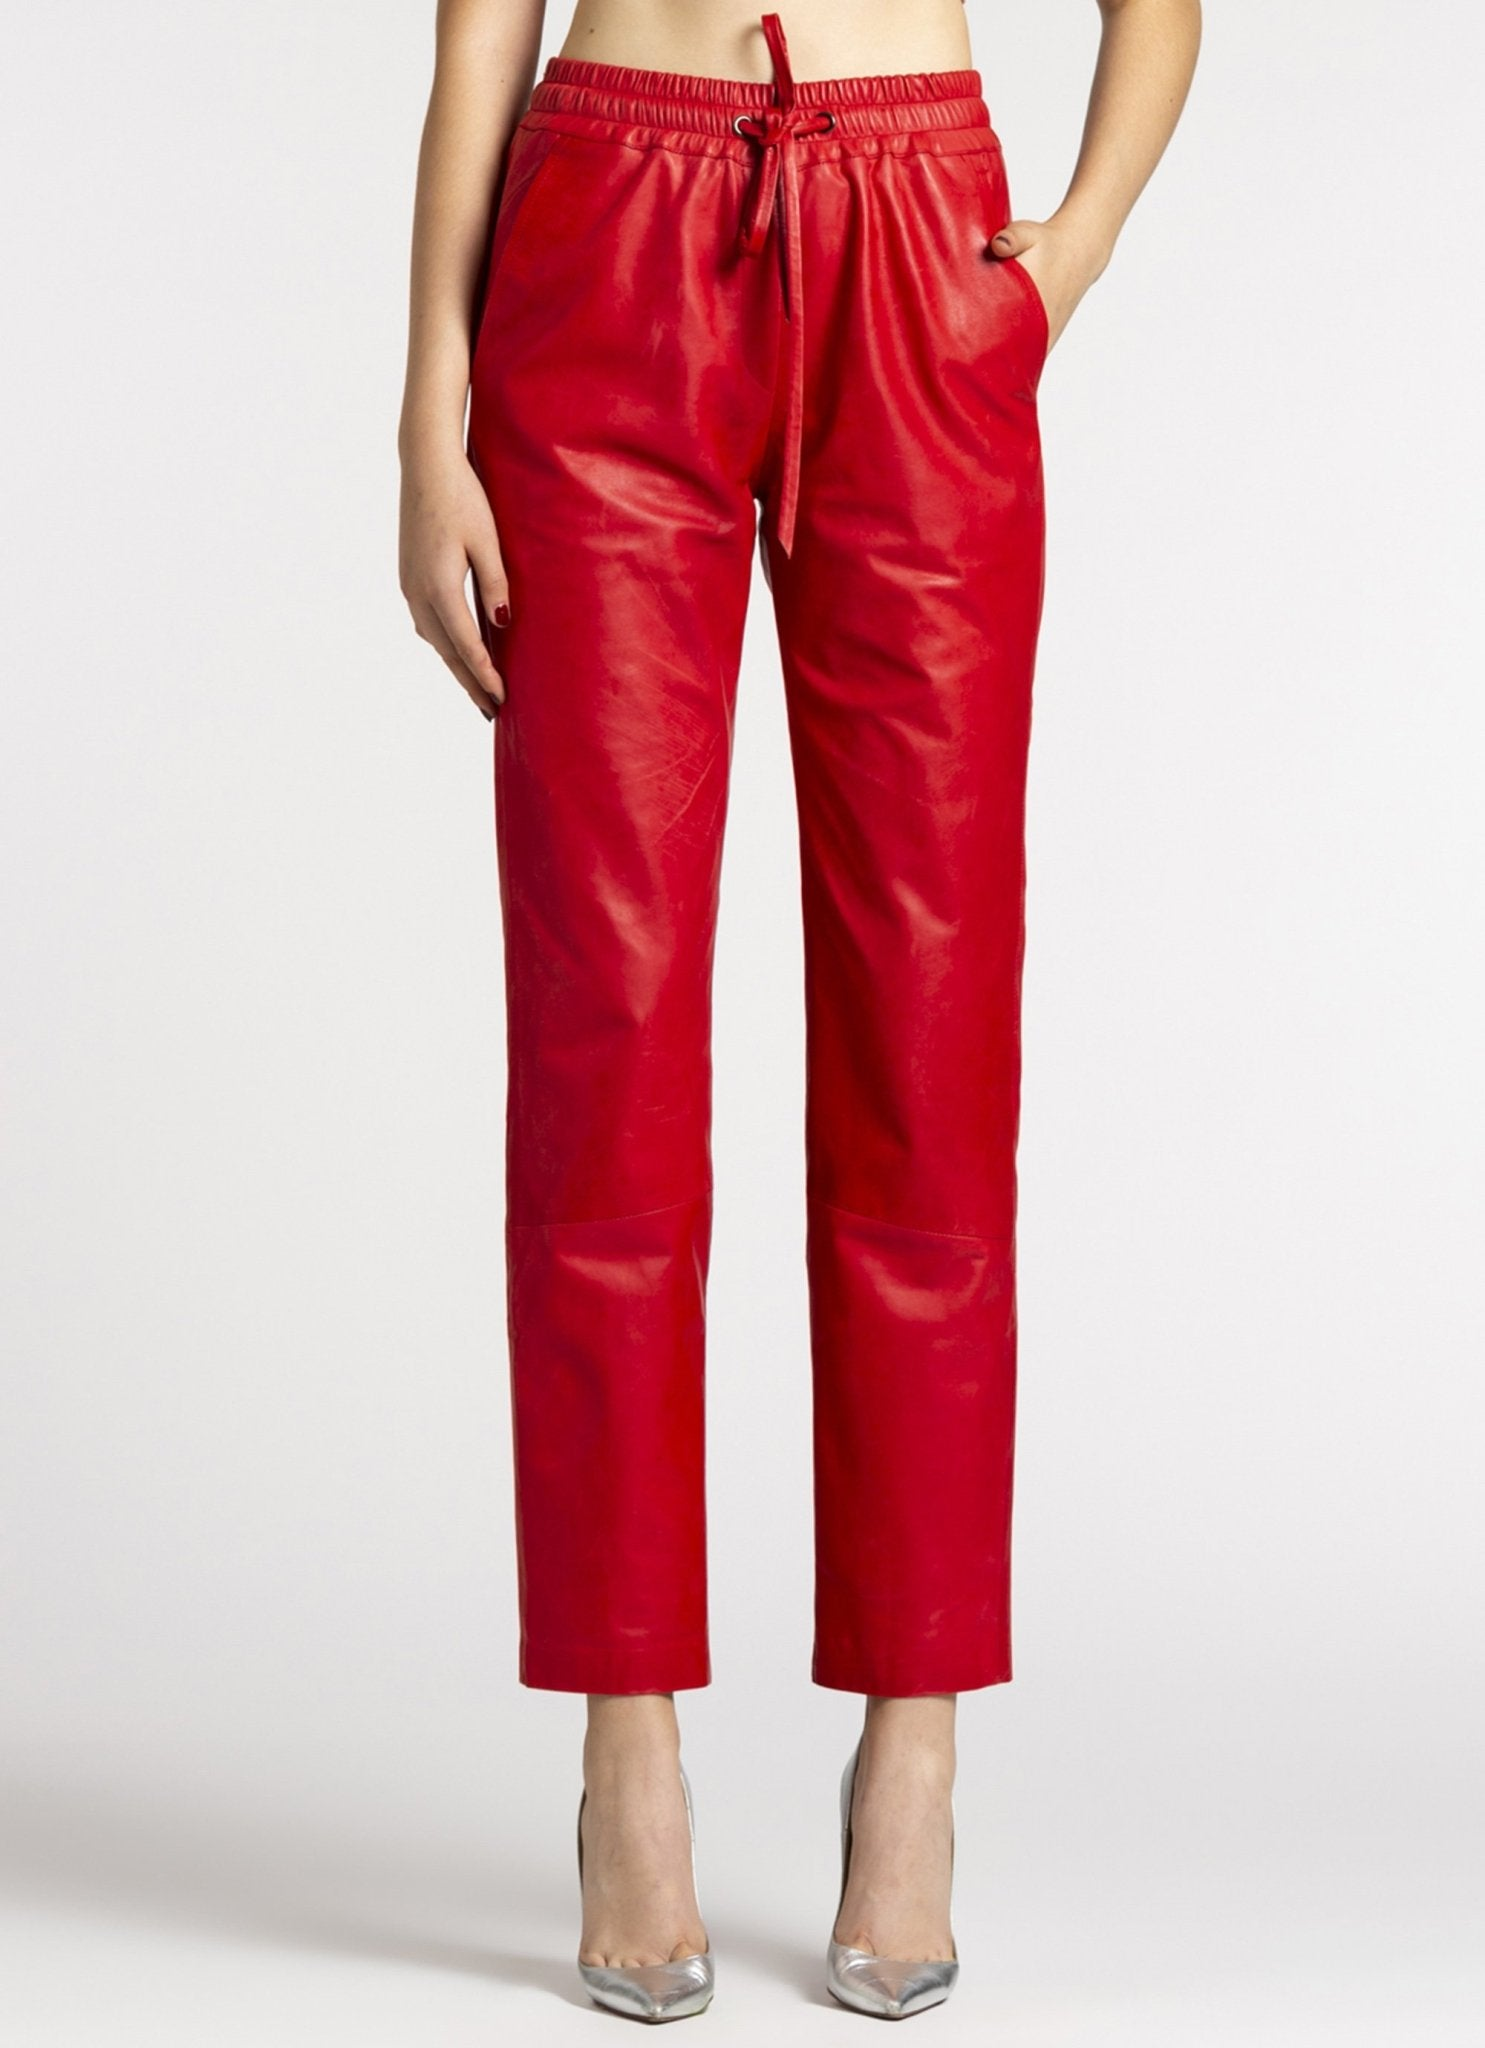 Leather Track Pants - The Clothing LoungePEARL AND RUBIES